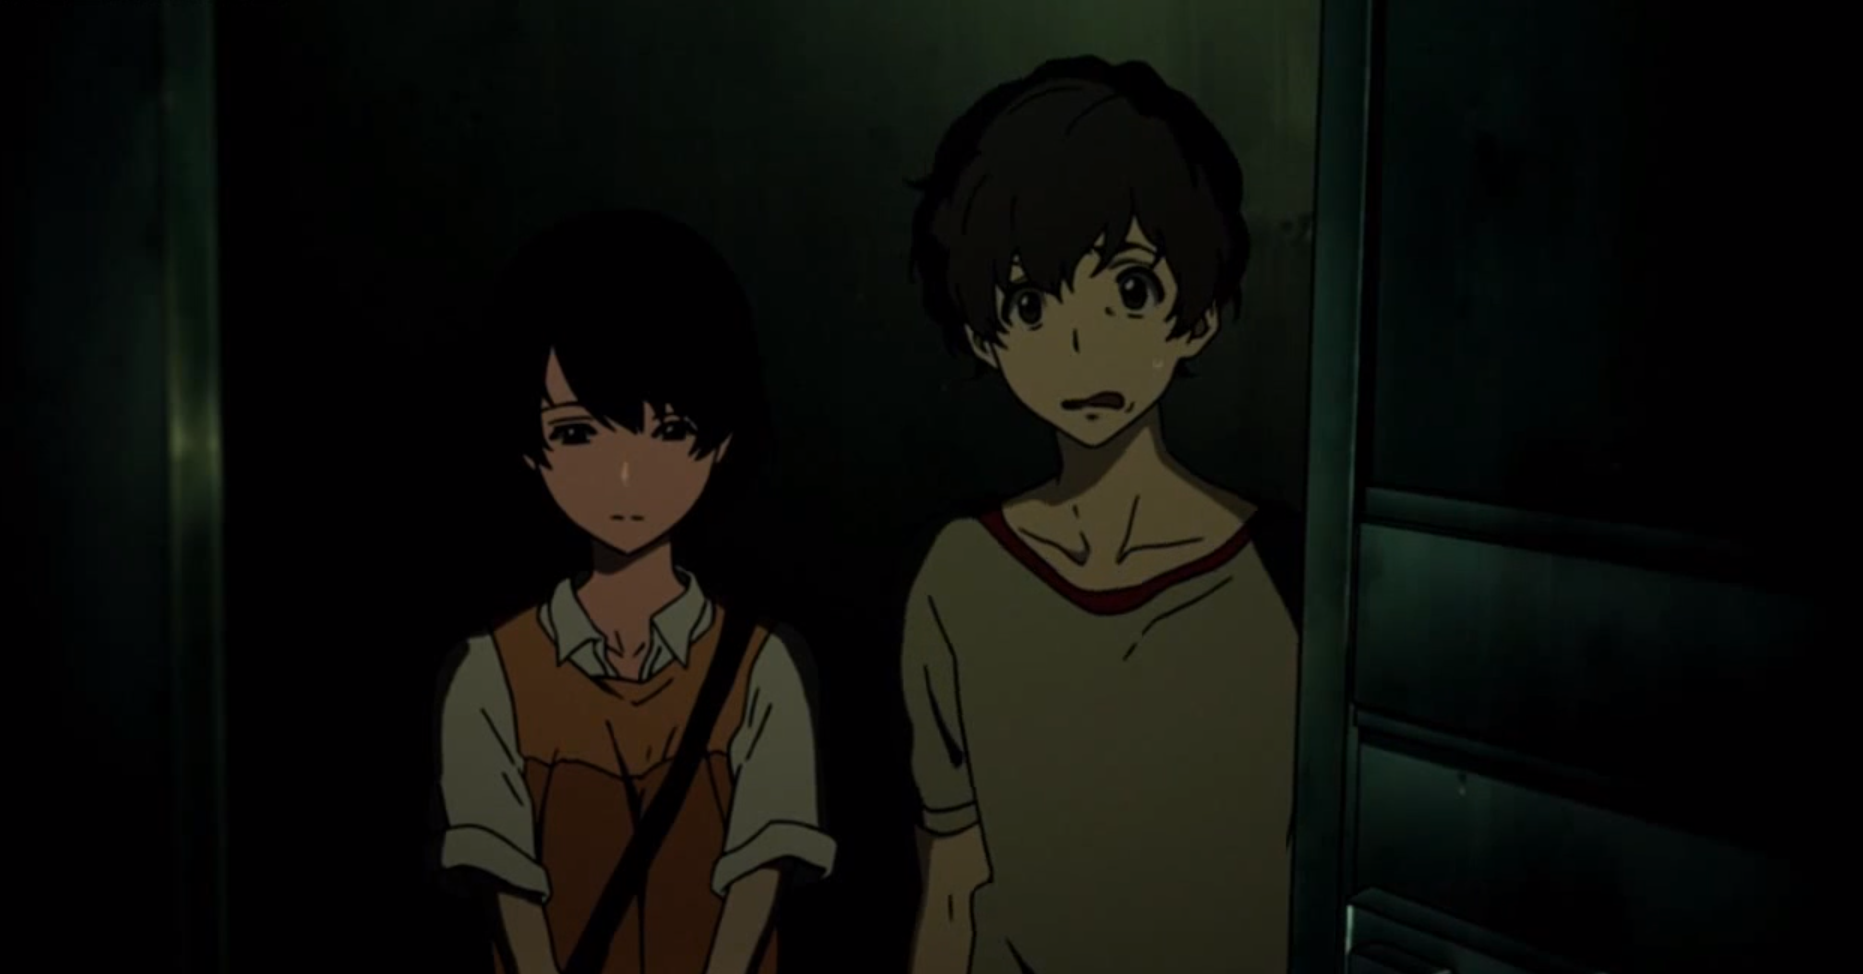 Zankyou no Terror, Episode 4 | Mage in a Barrel